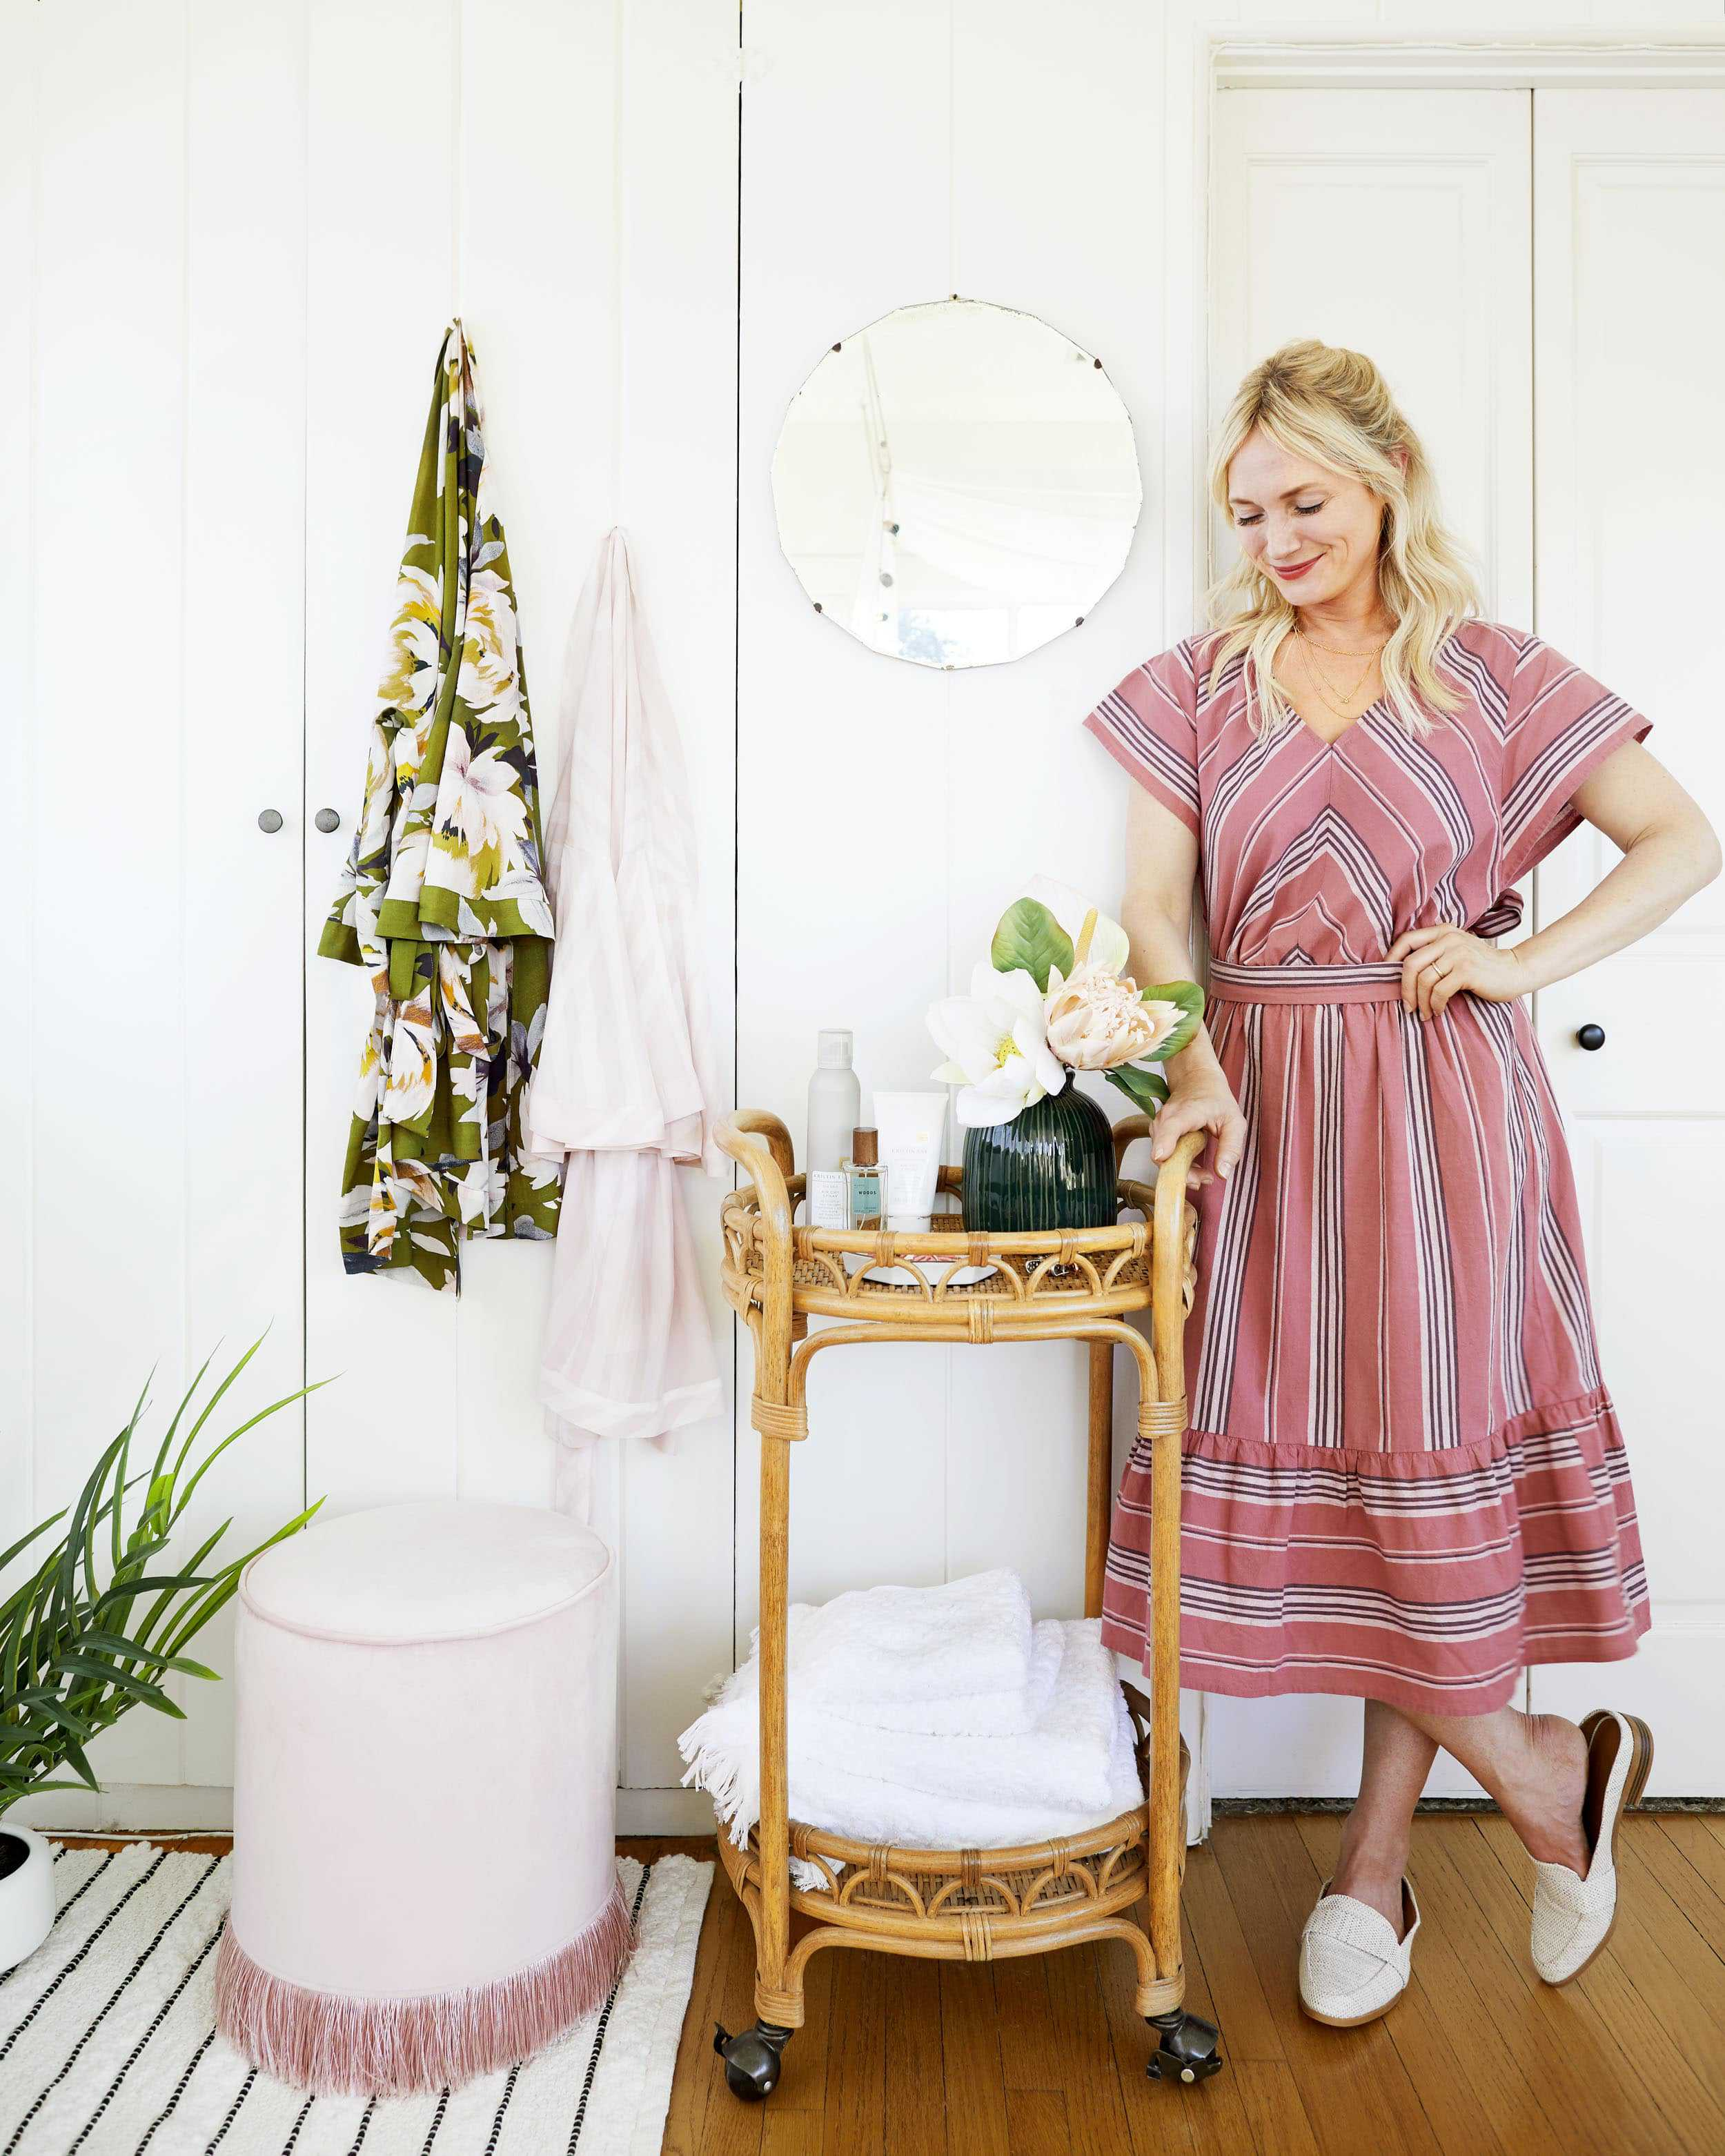 Target Opalhouse Spring 2019 Emily Henderson Portraits Lores3